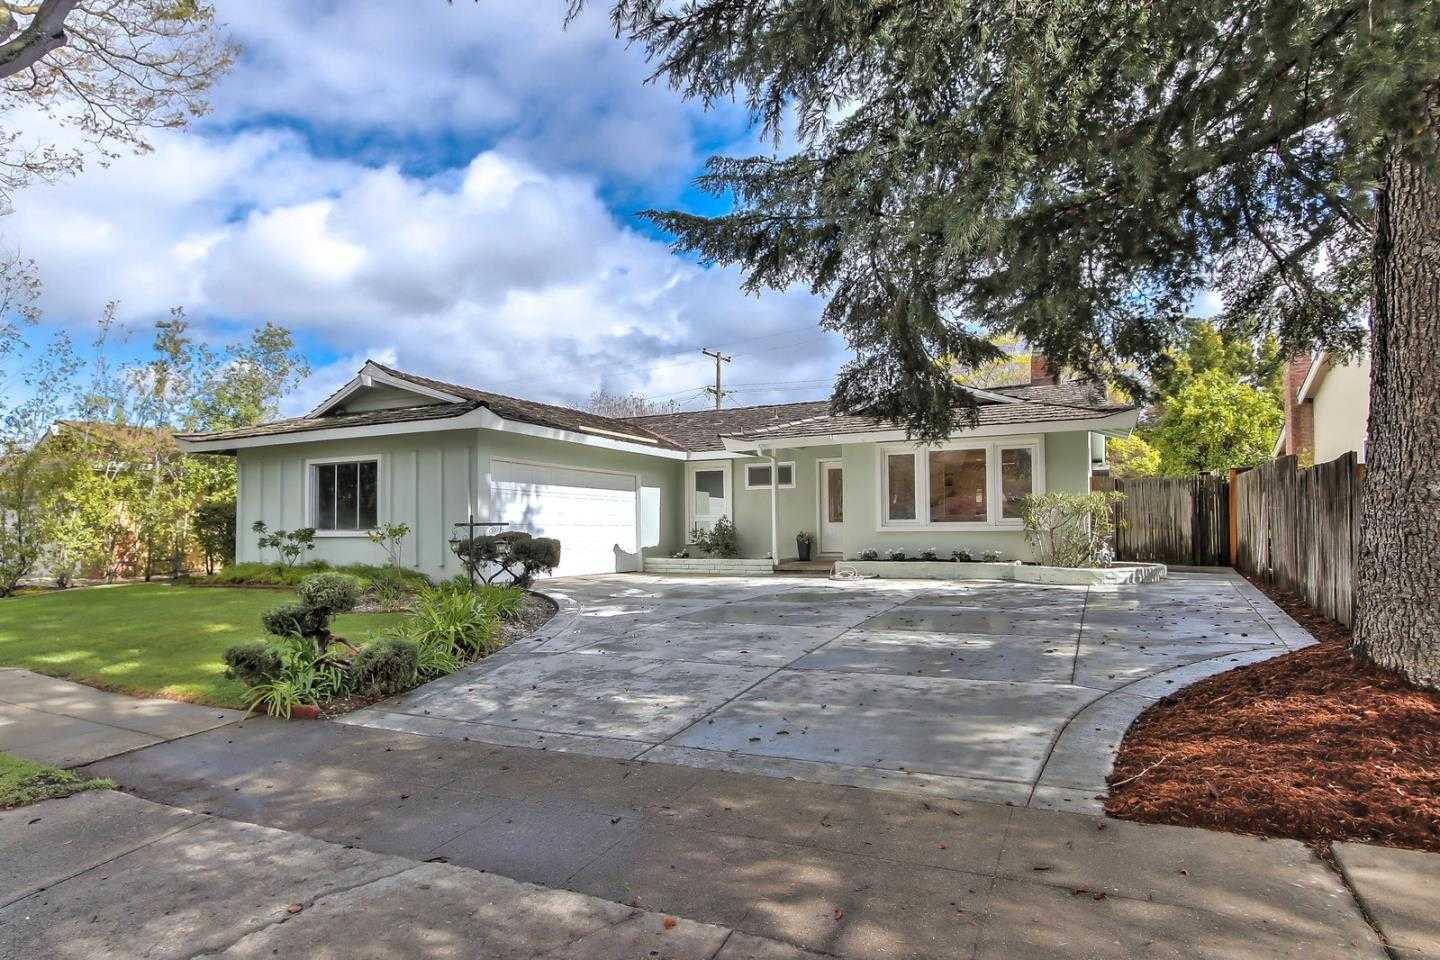 $1,598,000 - 4Br/2Ba -  for Sale in San Jose